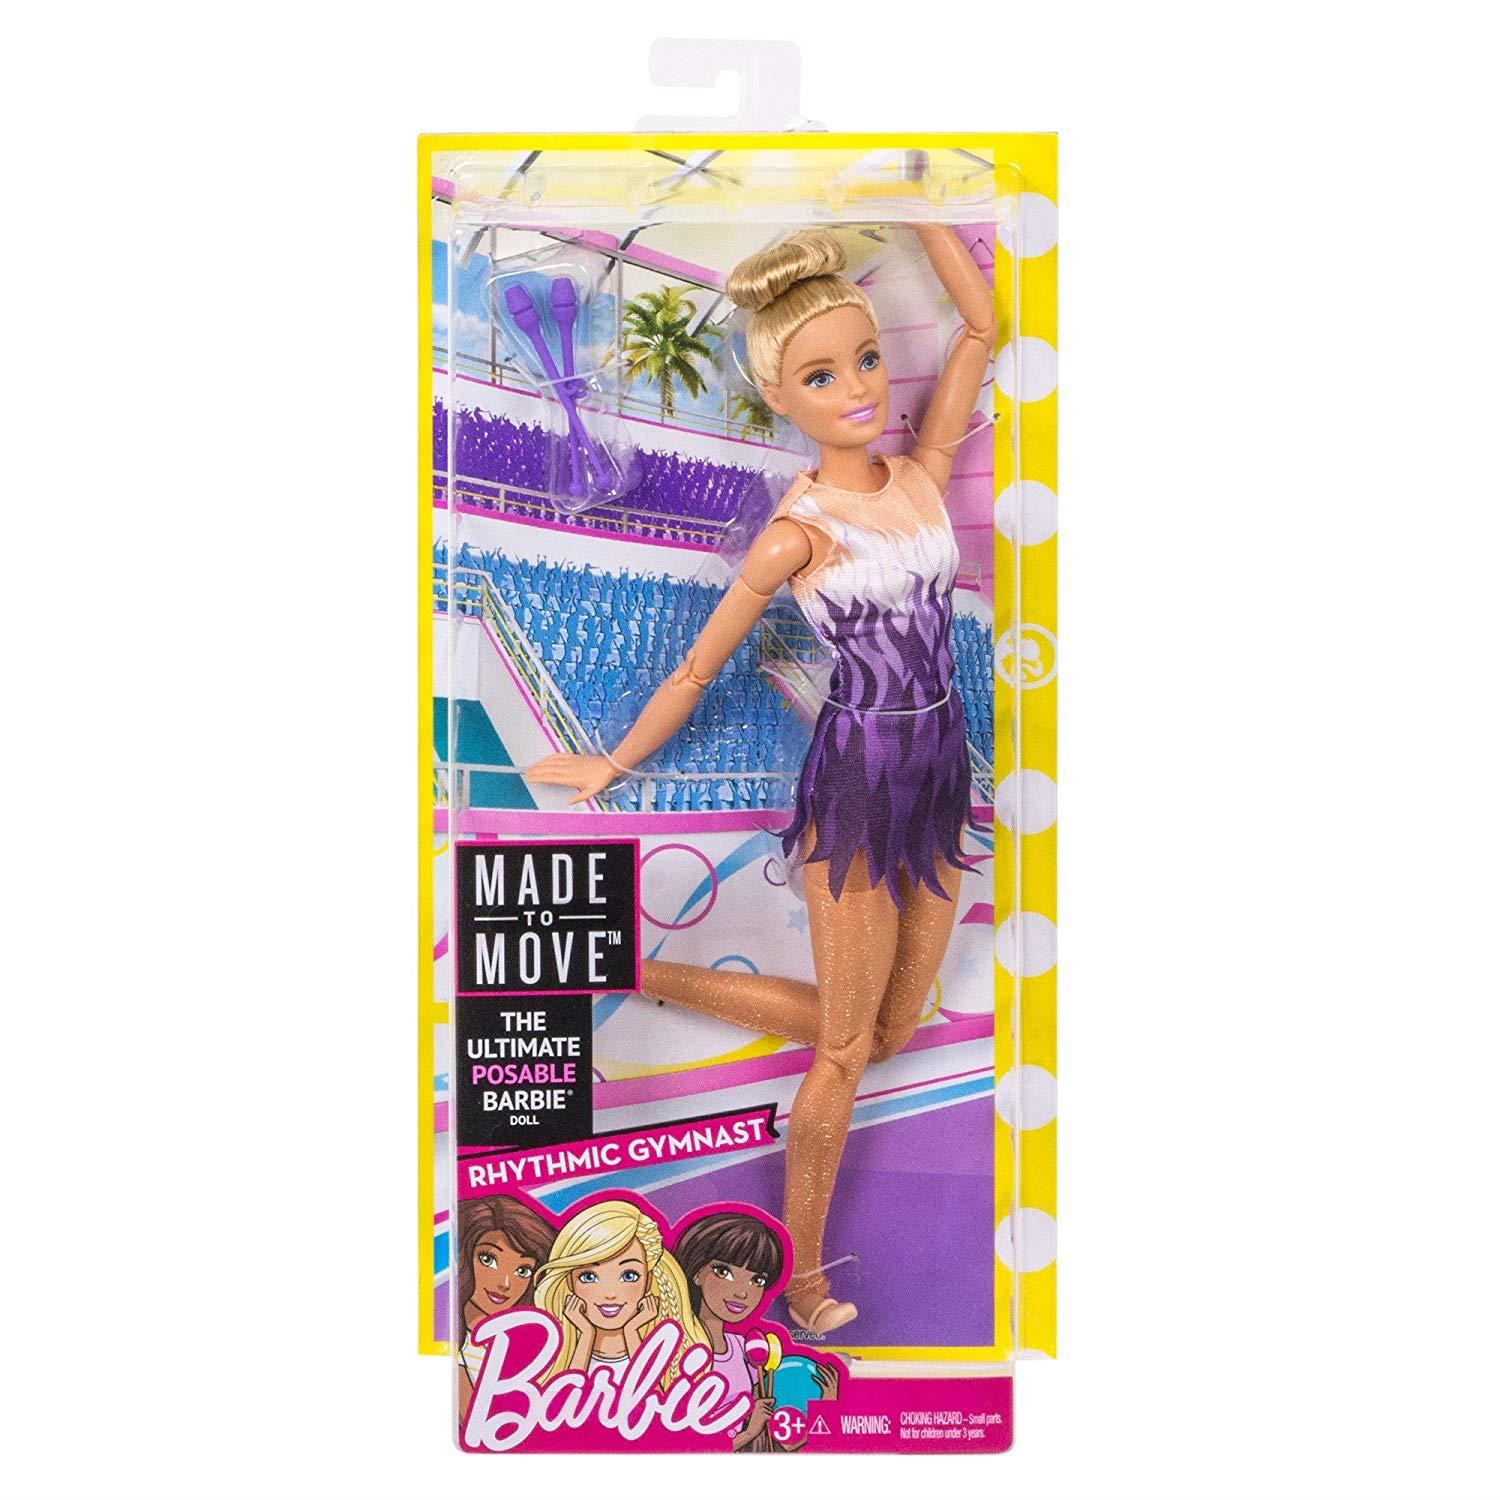 Barbie-Made-to-Move-Collectable-Careers-Fashion-Dolls miniatura 18